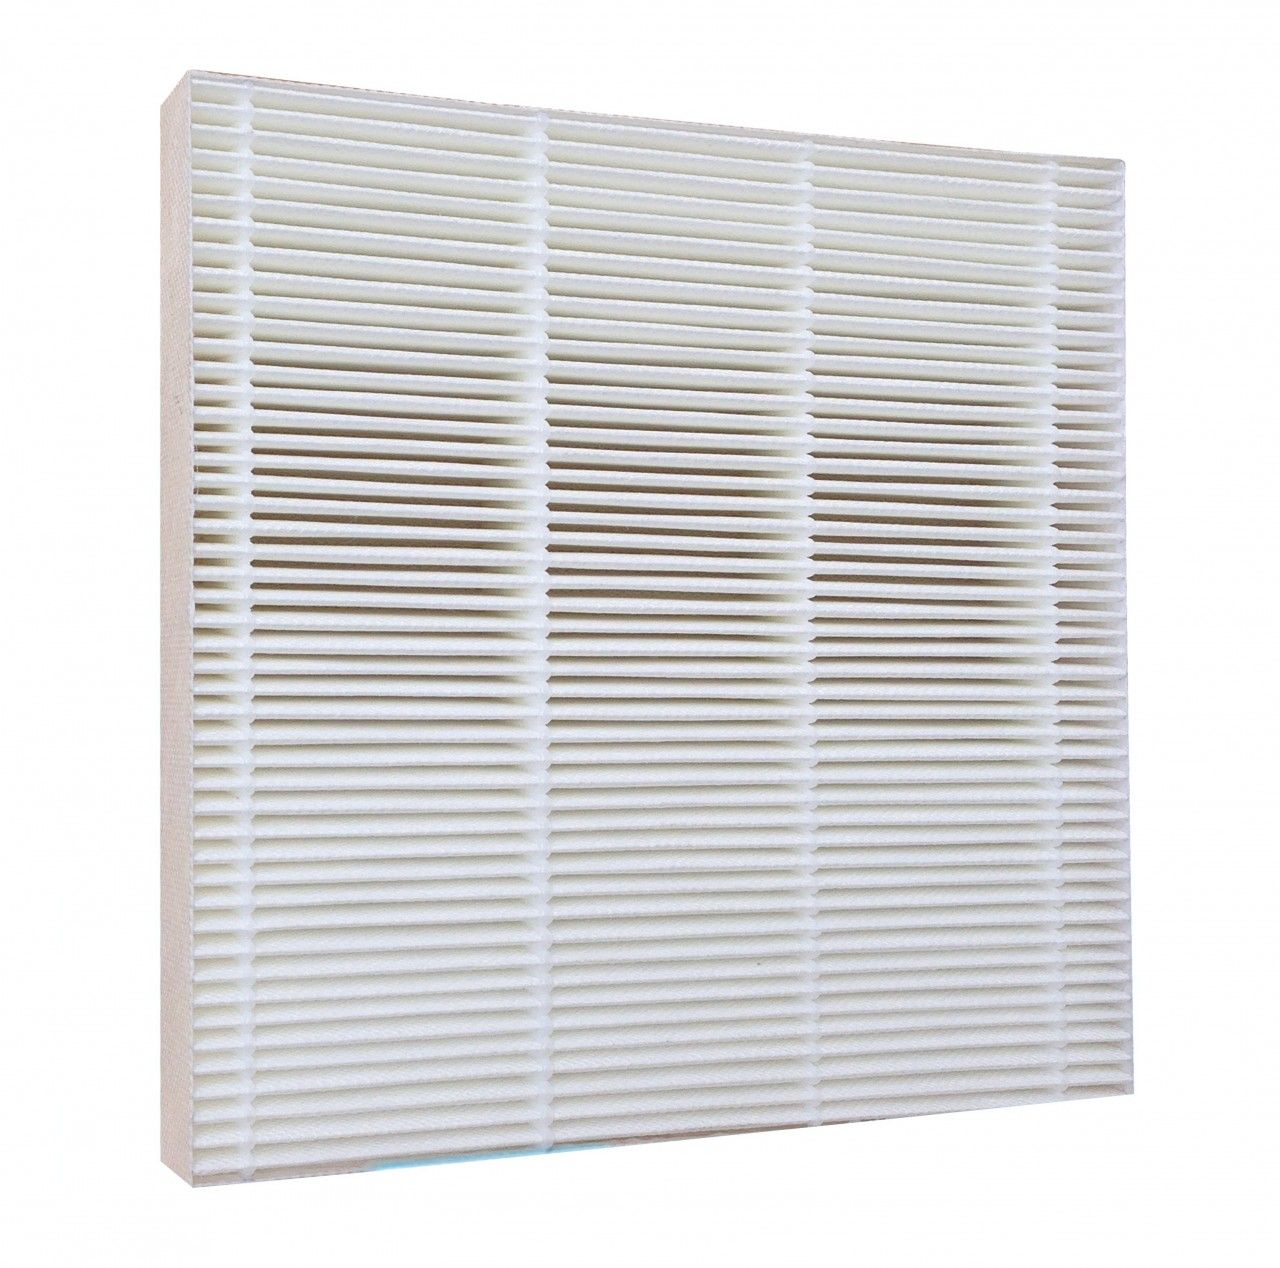 hepa filter for fresh air by ecoquest air purifier